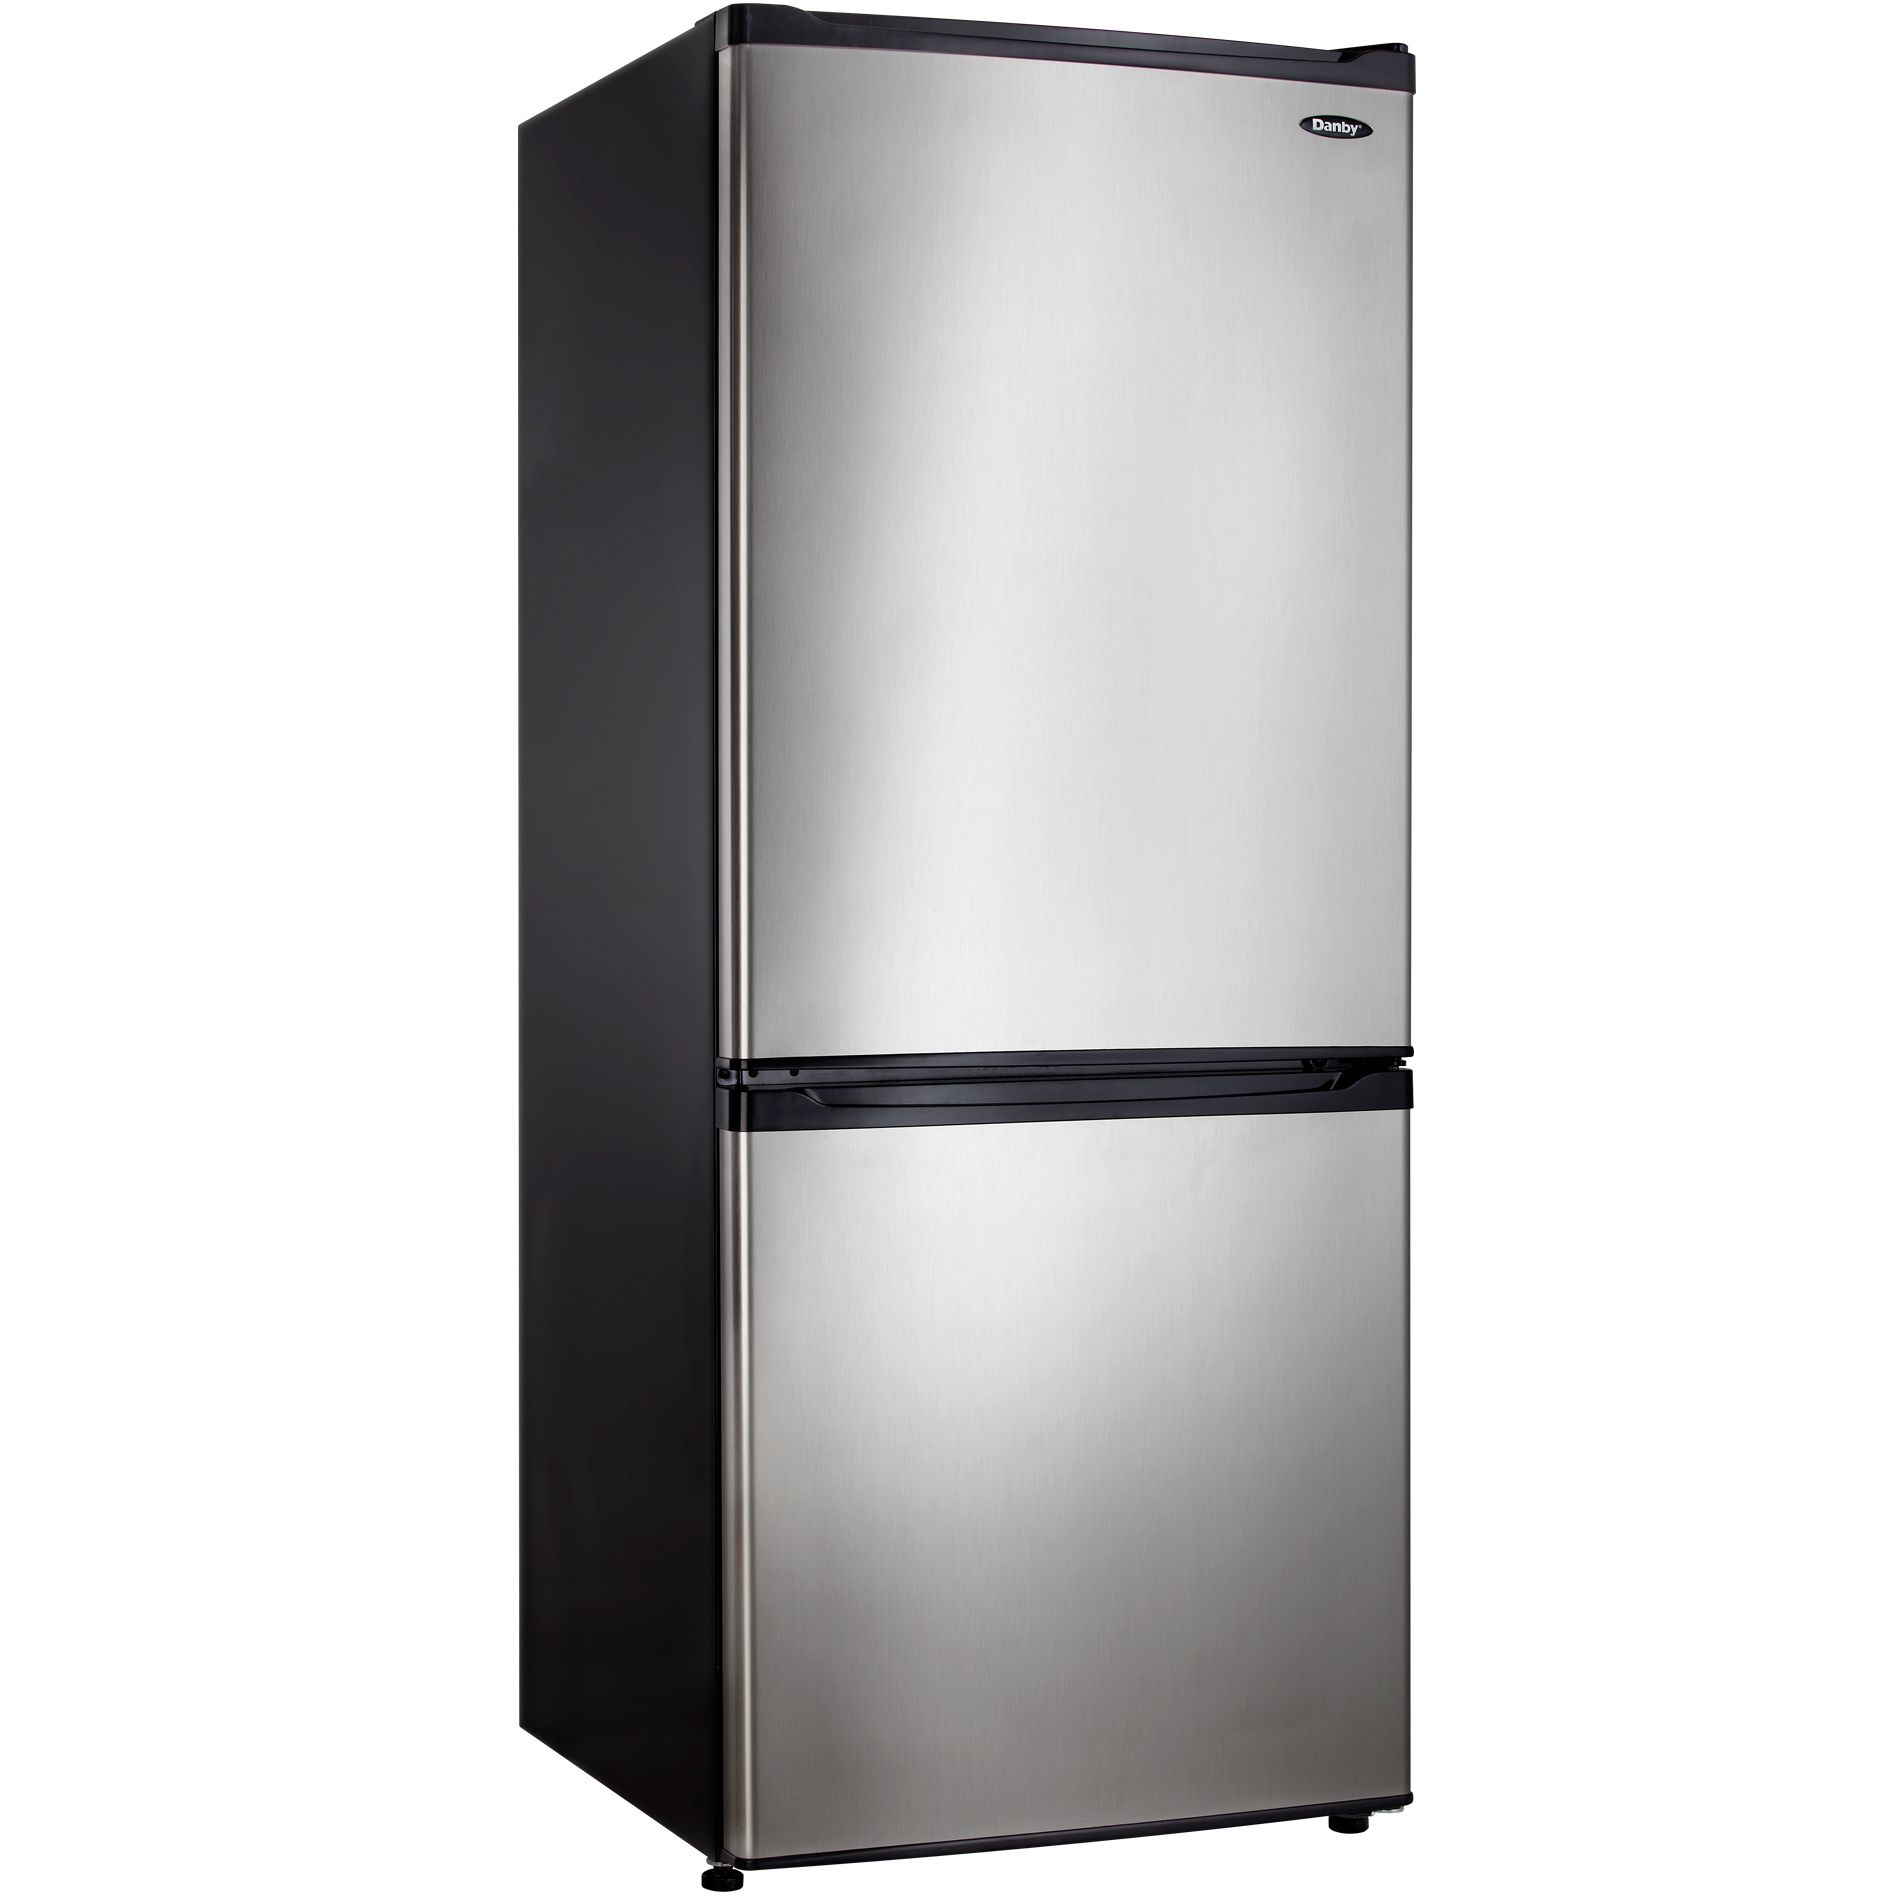 Danby Dff261bsldb 9.2 Cu. Ft. Compact Refrigerator - Stainless Steel